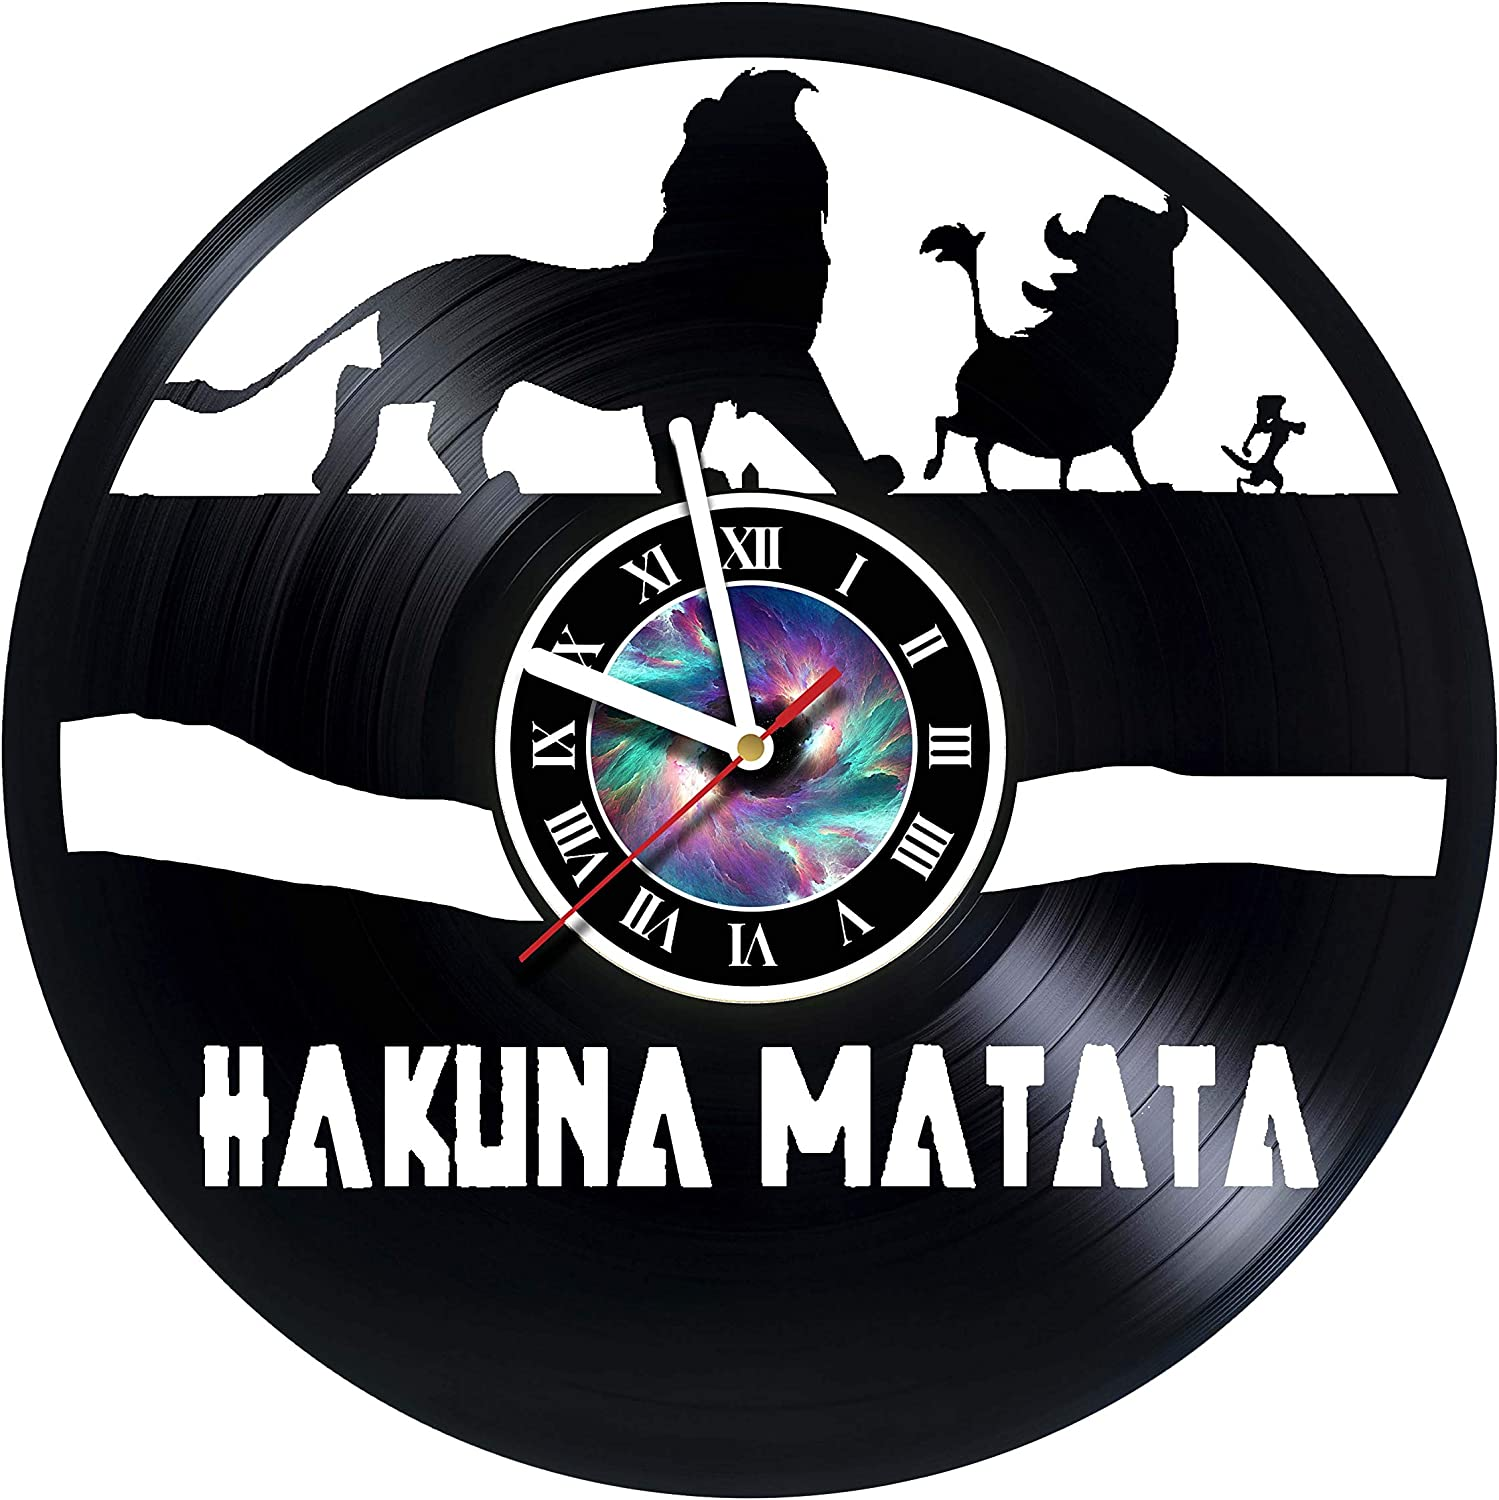 KravchArt Hakuna Matata - Lion King - Vinyl Record Wall Clock - Get Unique Gifts Presents for Birthday, Christmas, Ideas for Boys, Girls, Men, Women, Adults, him and her - Sport Unique Design